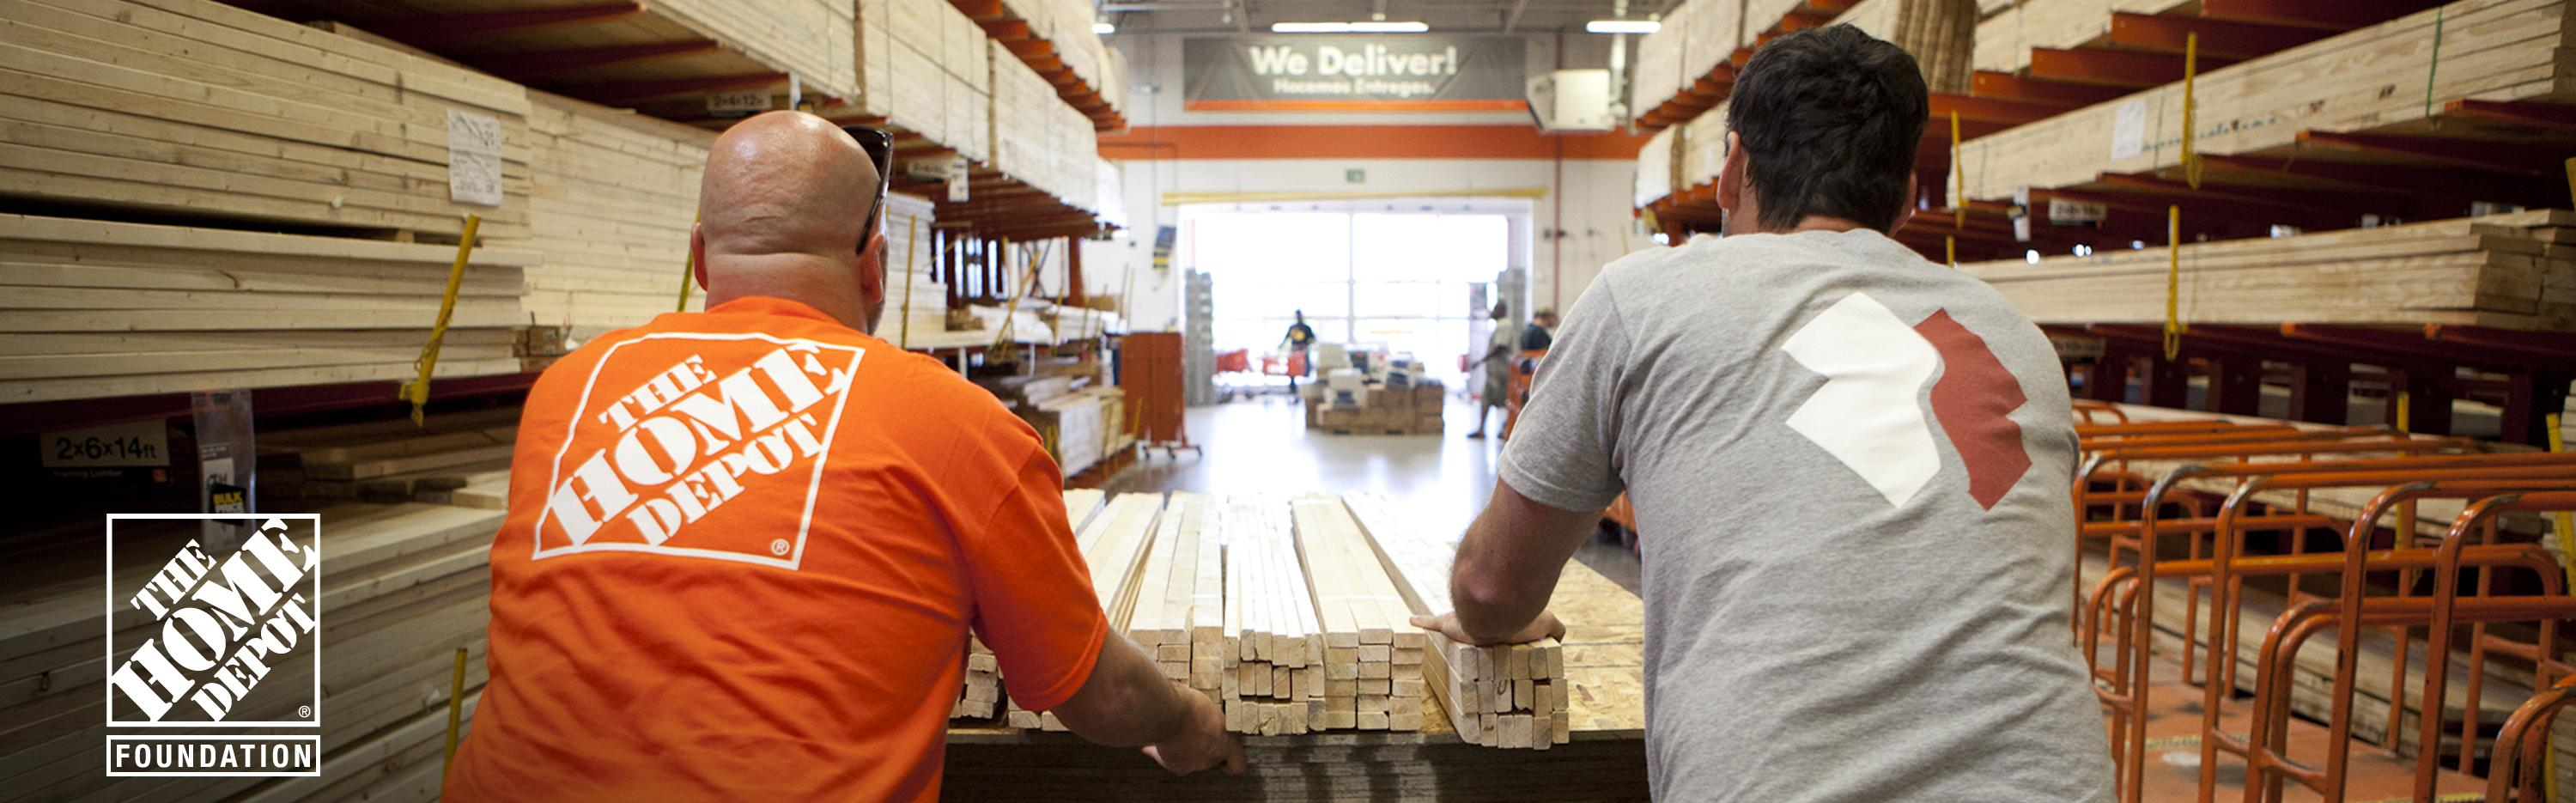 the home depot | the home depot foundation - partnerships